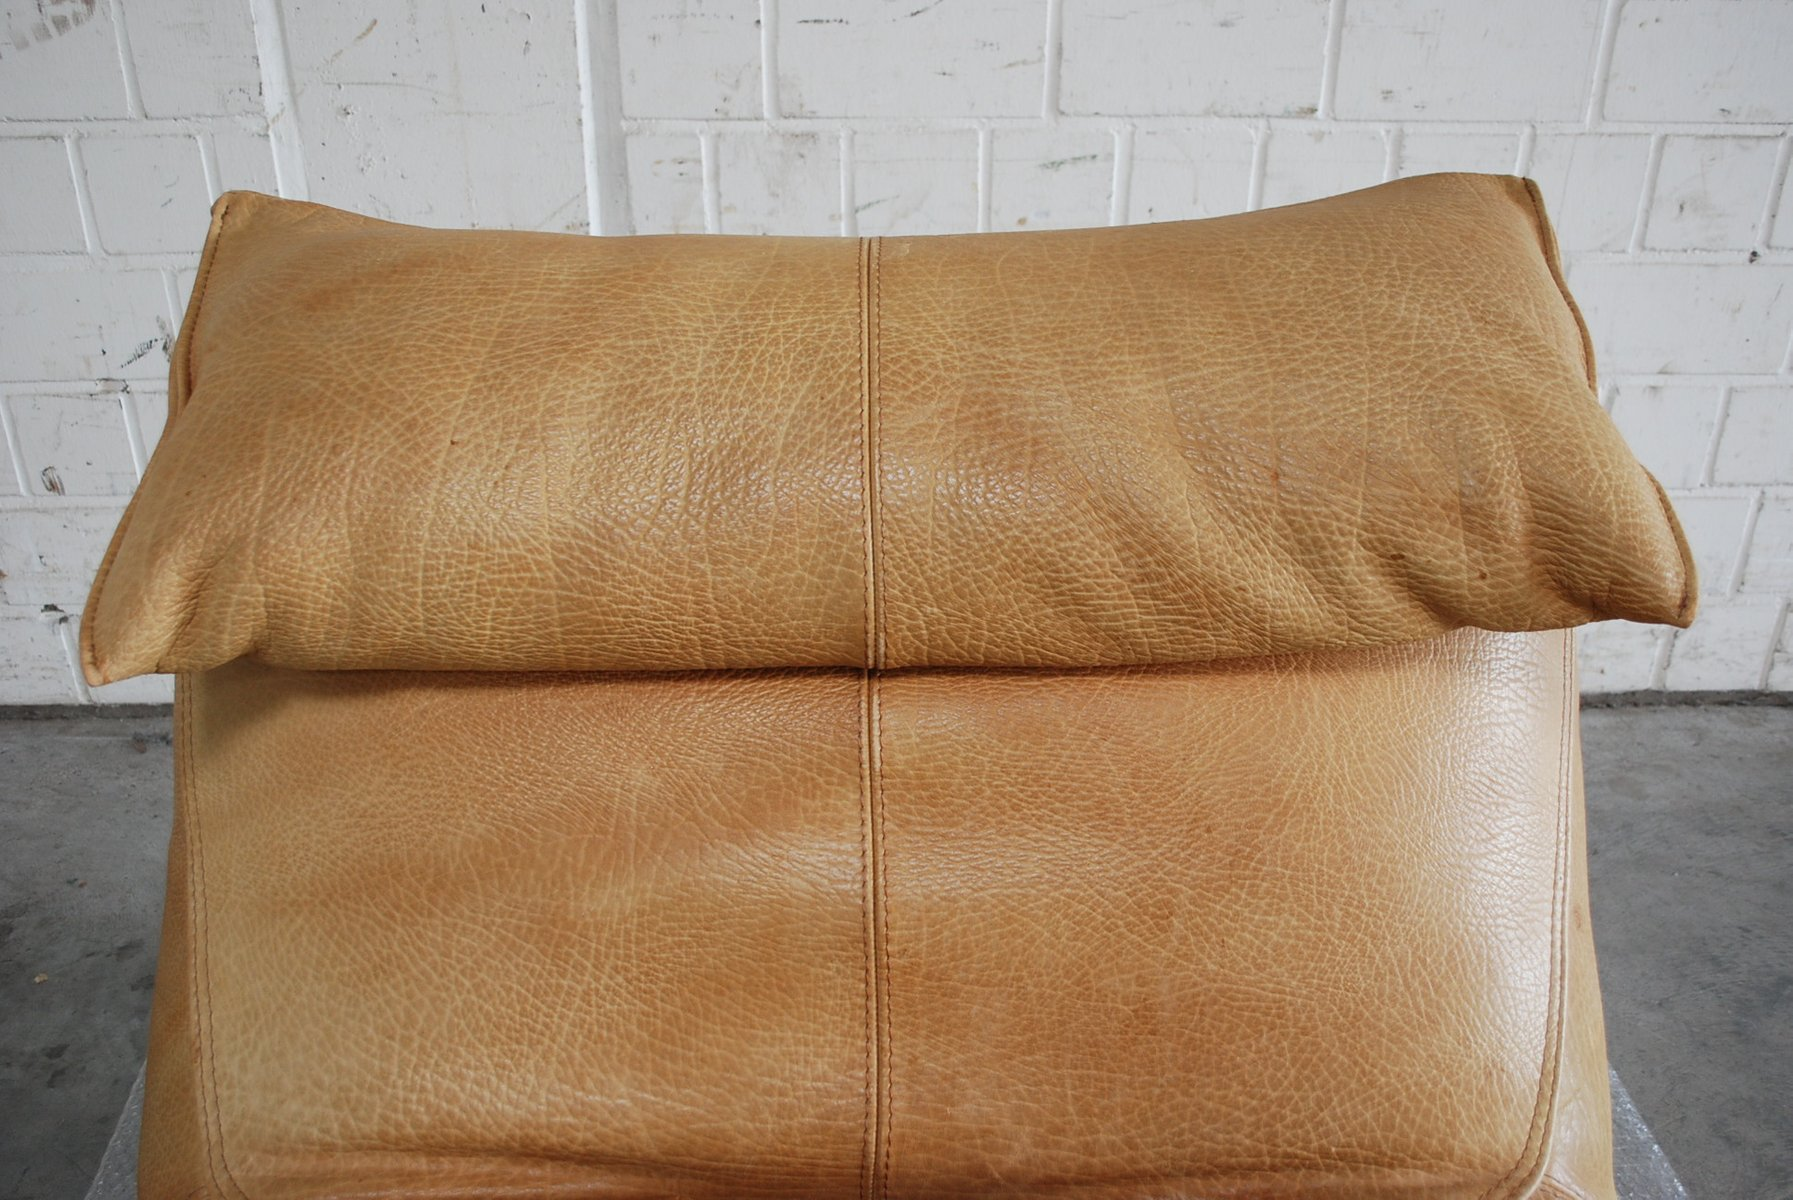 Vintage le bambole leather chaise lounge by mario bellini for Antique chaise lounge for sale